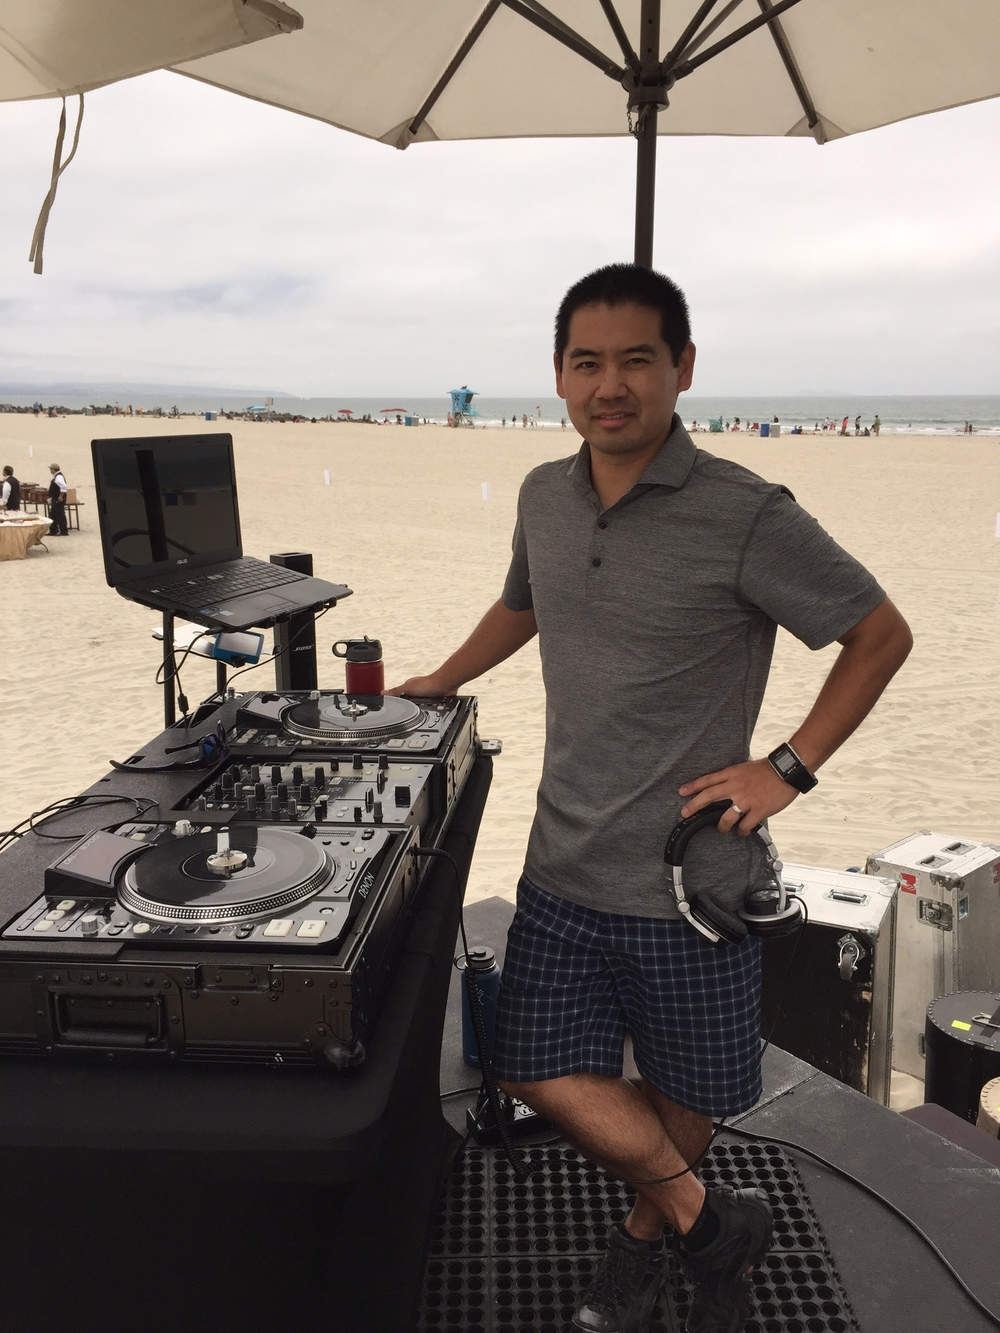 San Diego DJ, Justin Kanoya, performs at the 2015 Hotel Del Coronado Flag Day Concert. He was the opening act for the Gary Sinise's, Lt. Dan Band.